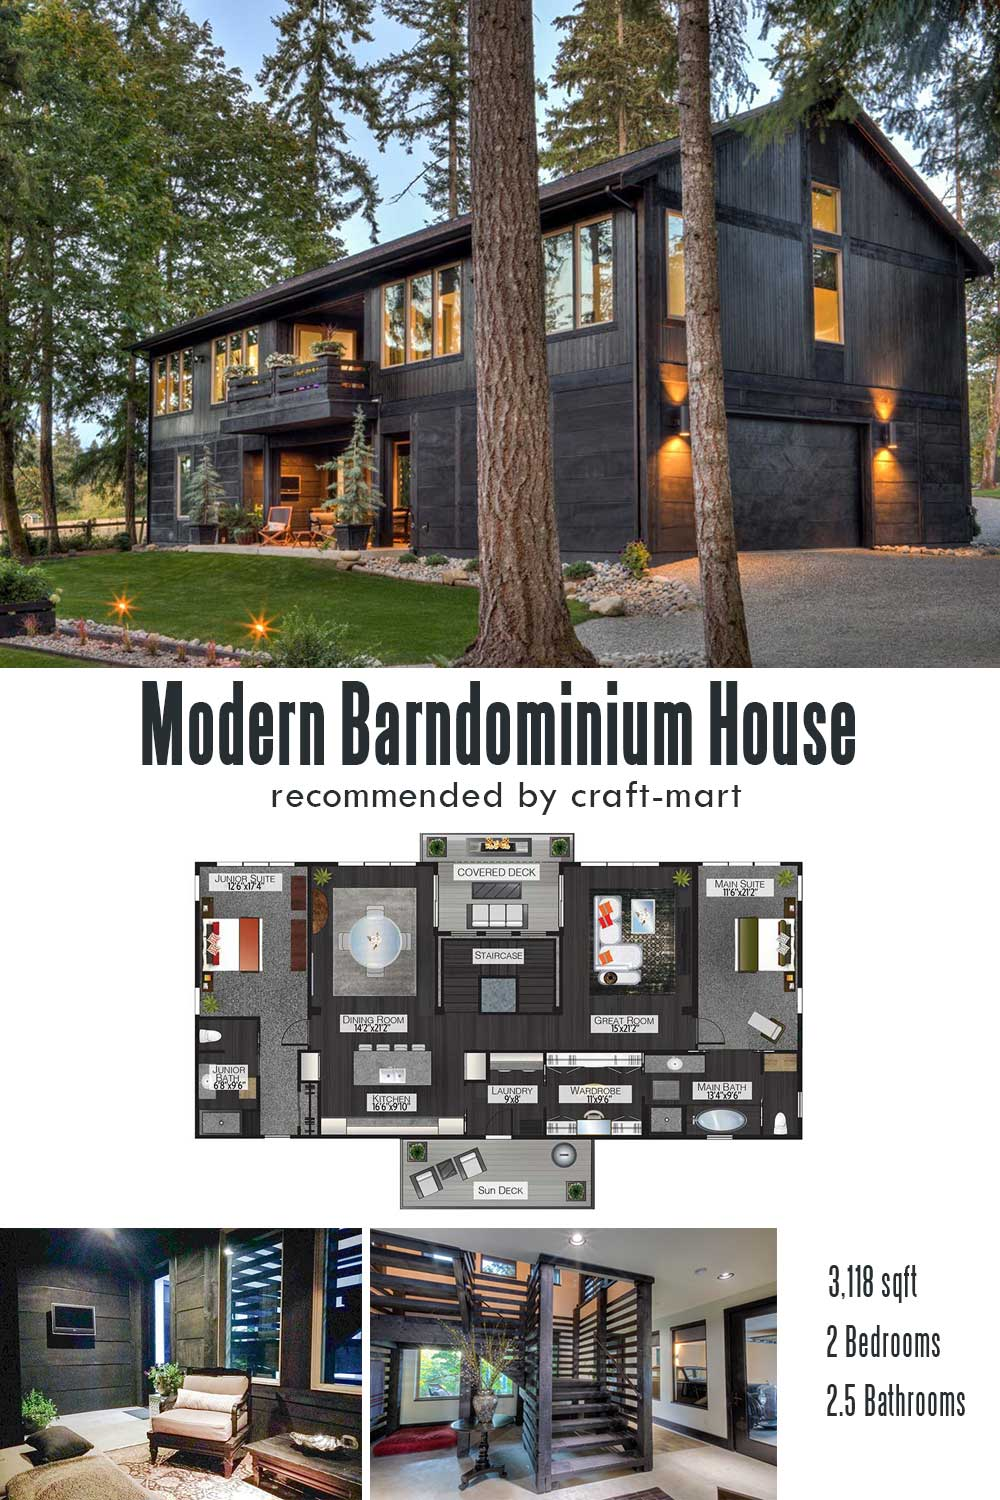 Modern Barndominium House with Two Bedroom Suites